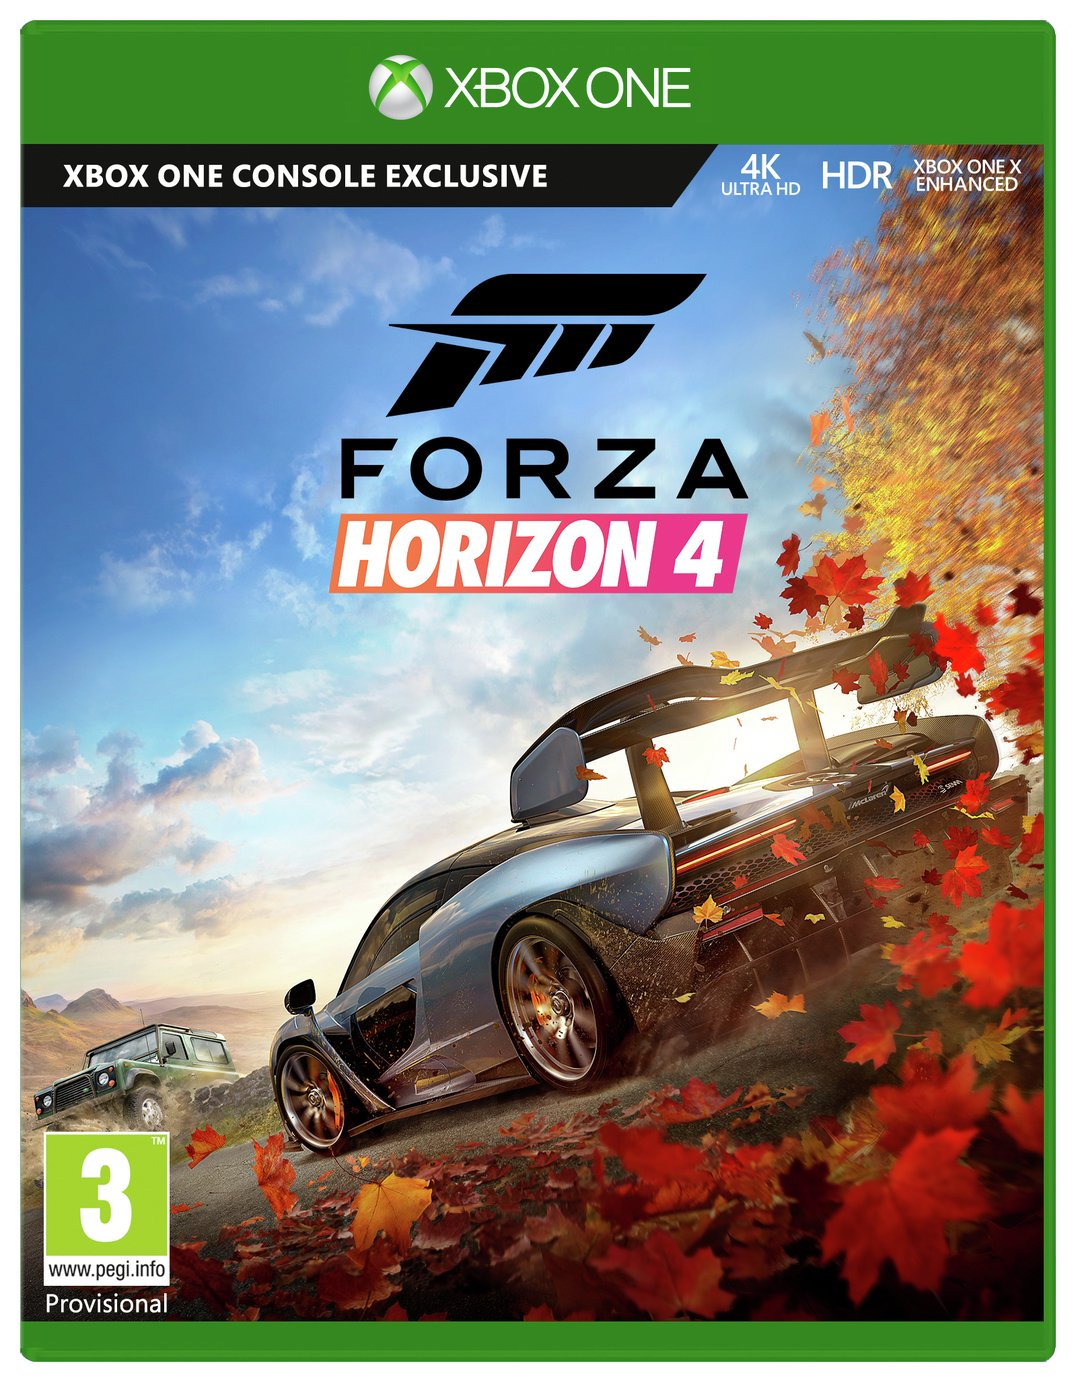 Forza Horizon 4 Xbox One Game from Microsoft